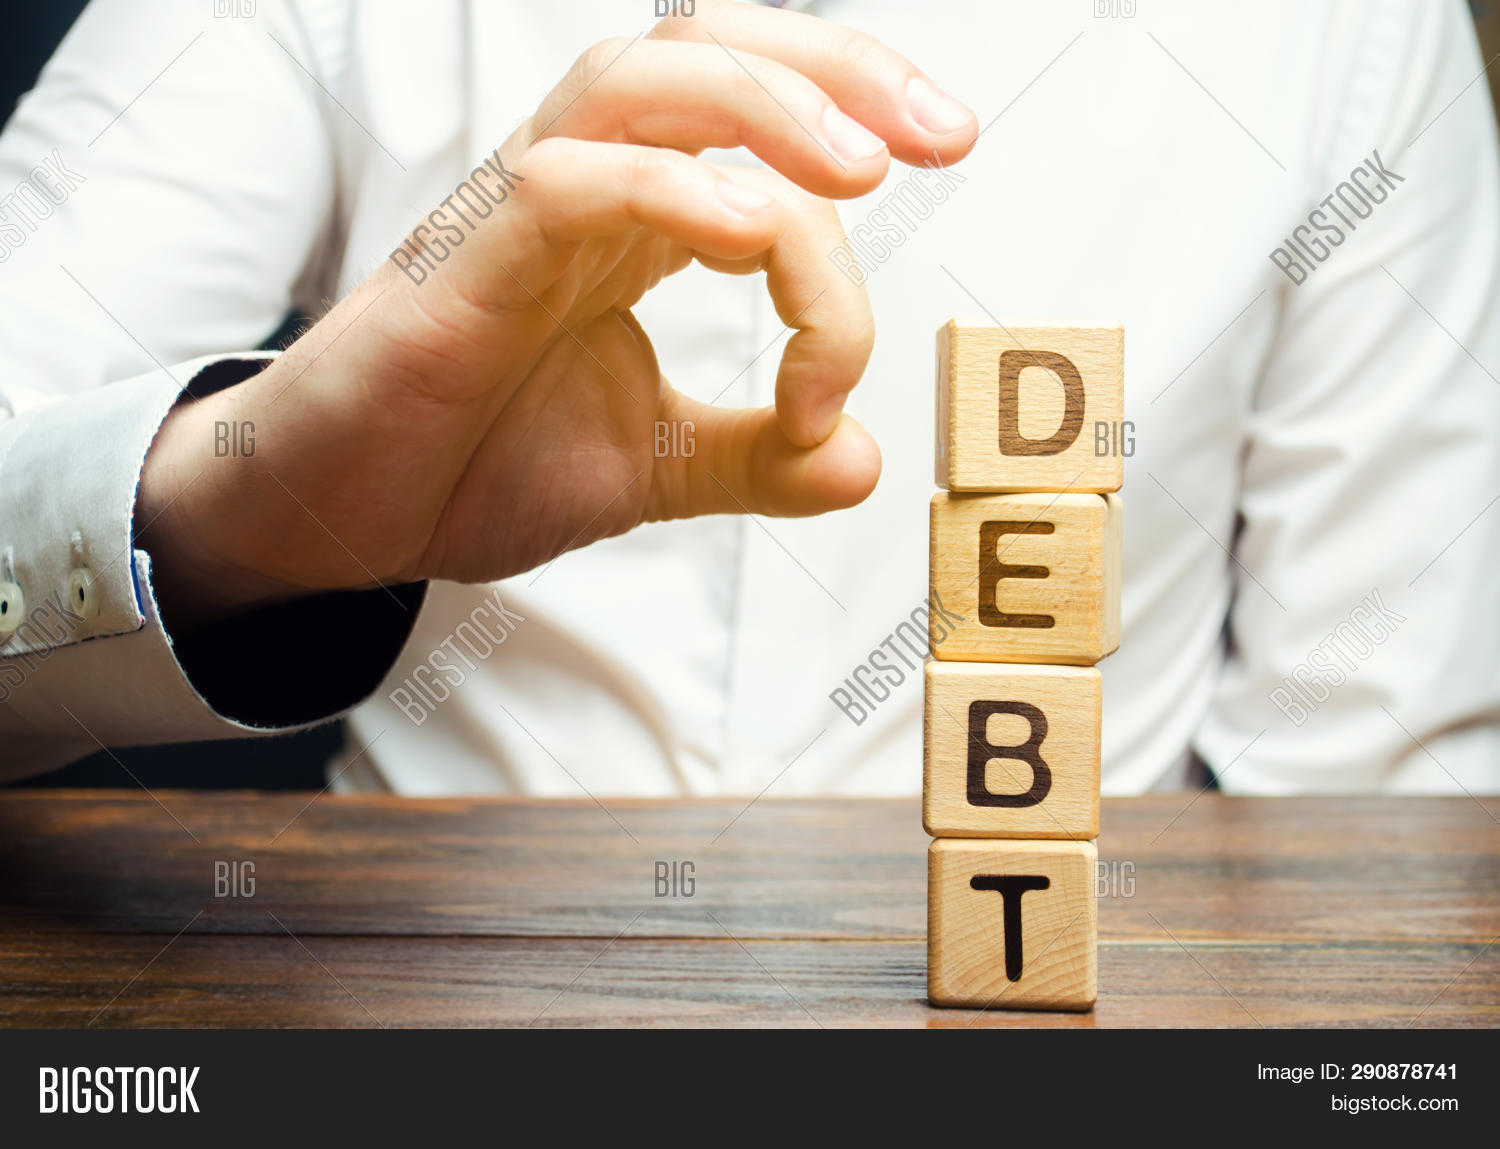 Businessman Removes Wooden Blocks With The Word Debt. Reduction Or Restructuring Of Debt. Bankruptcy